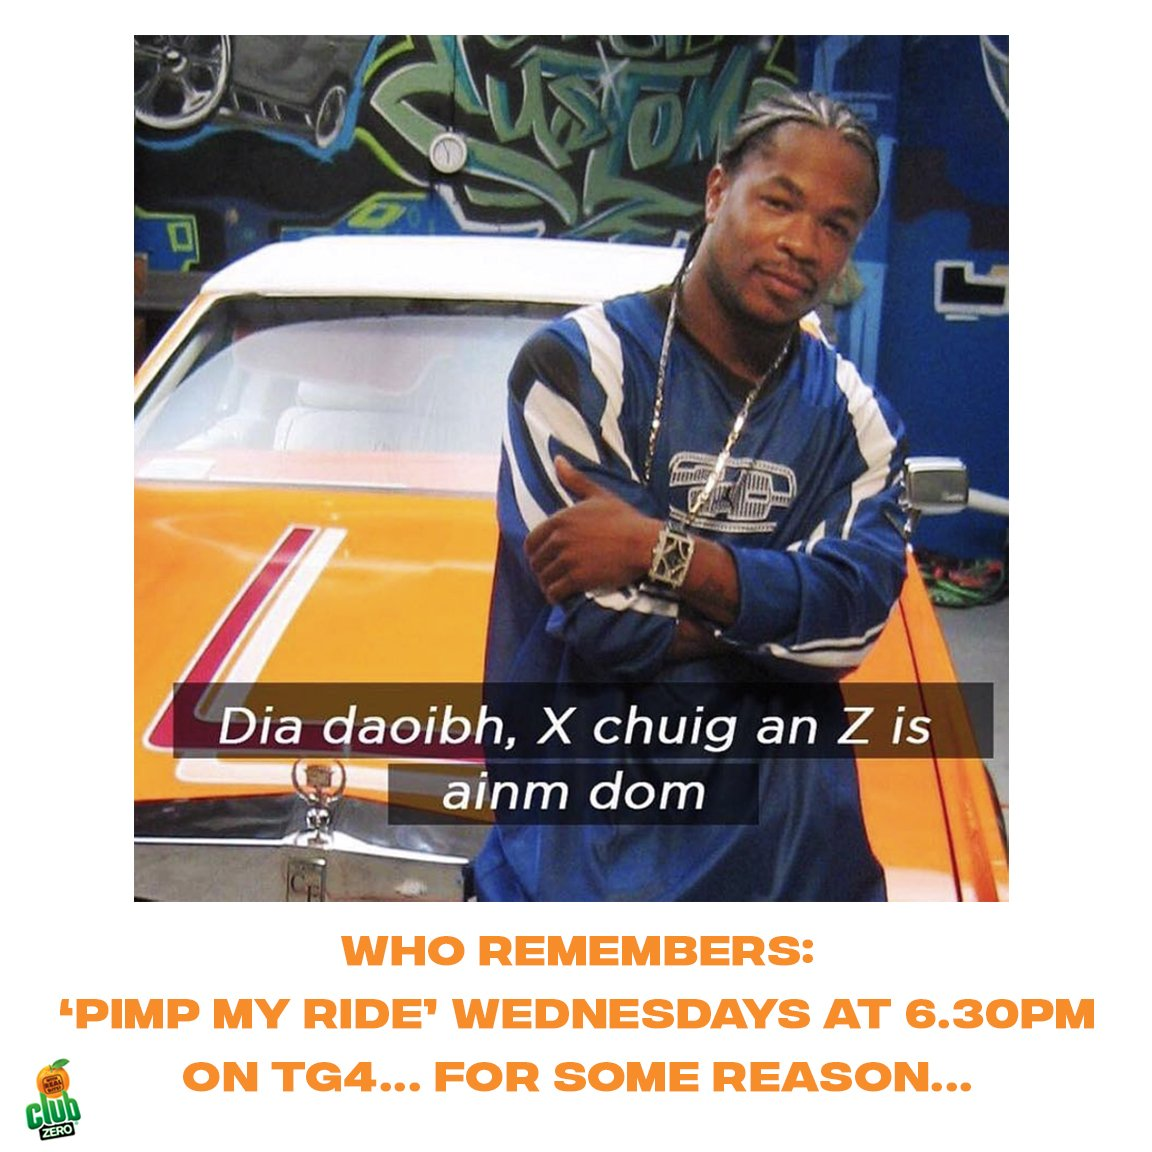 Pimp My Ride: Xzibit should be just as important to the Irish language as Peig Sayers      #ThrowbackThursday #ClubOrange #ClubZero #GreatThenGreatNow https://t.co/ll6LkCi51S